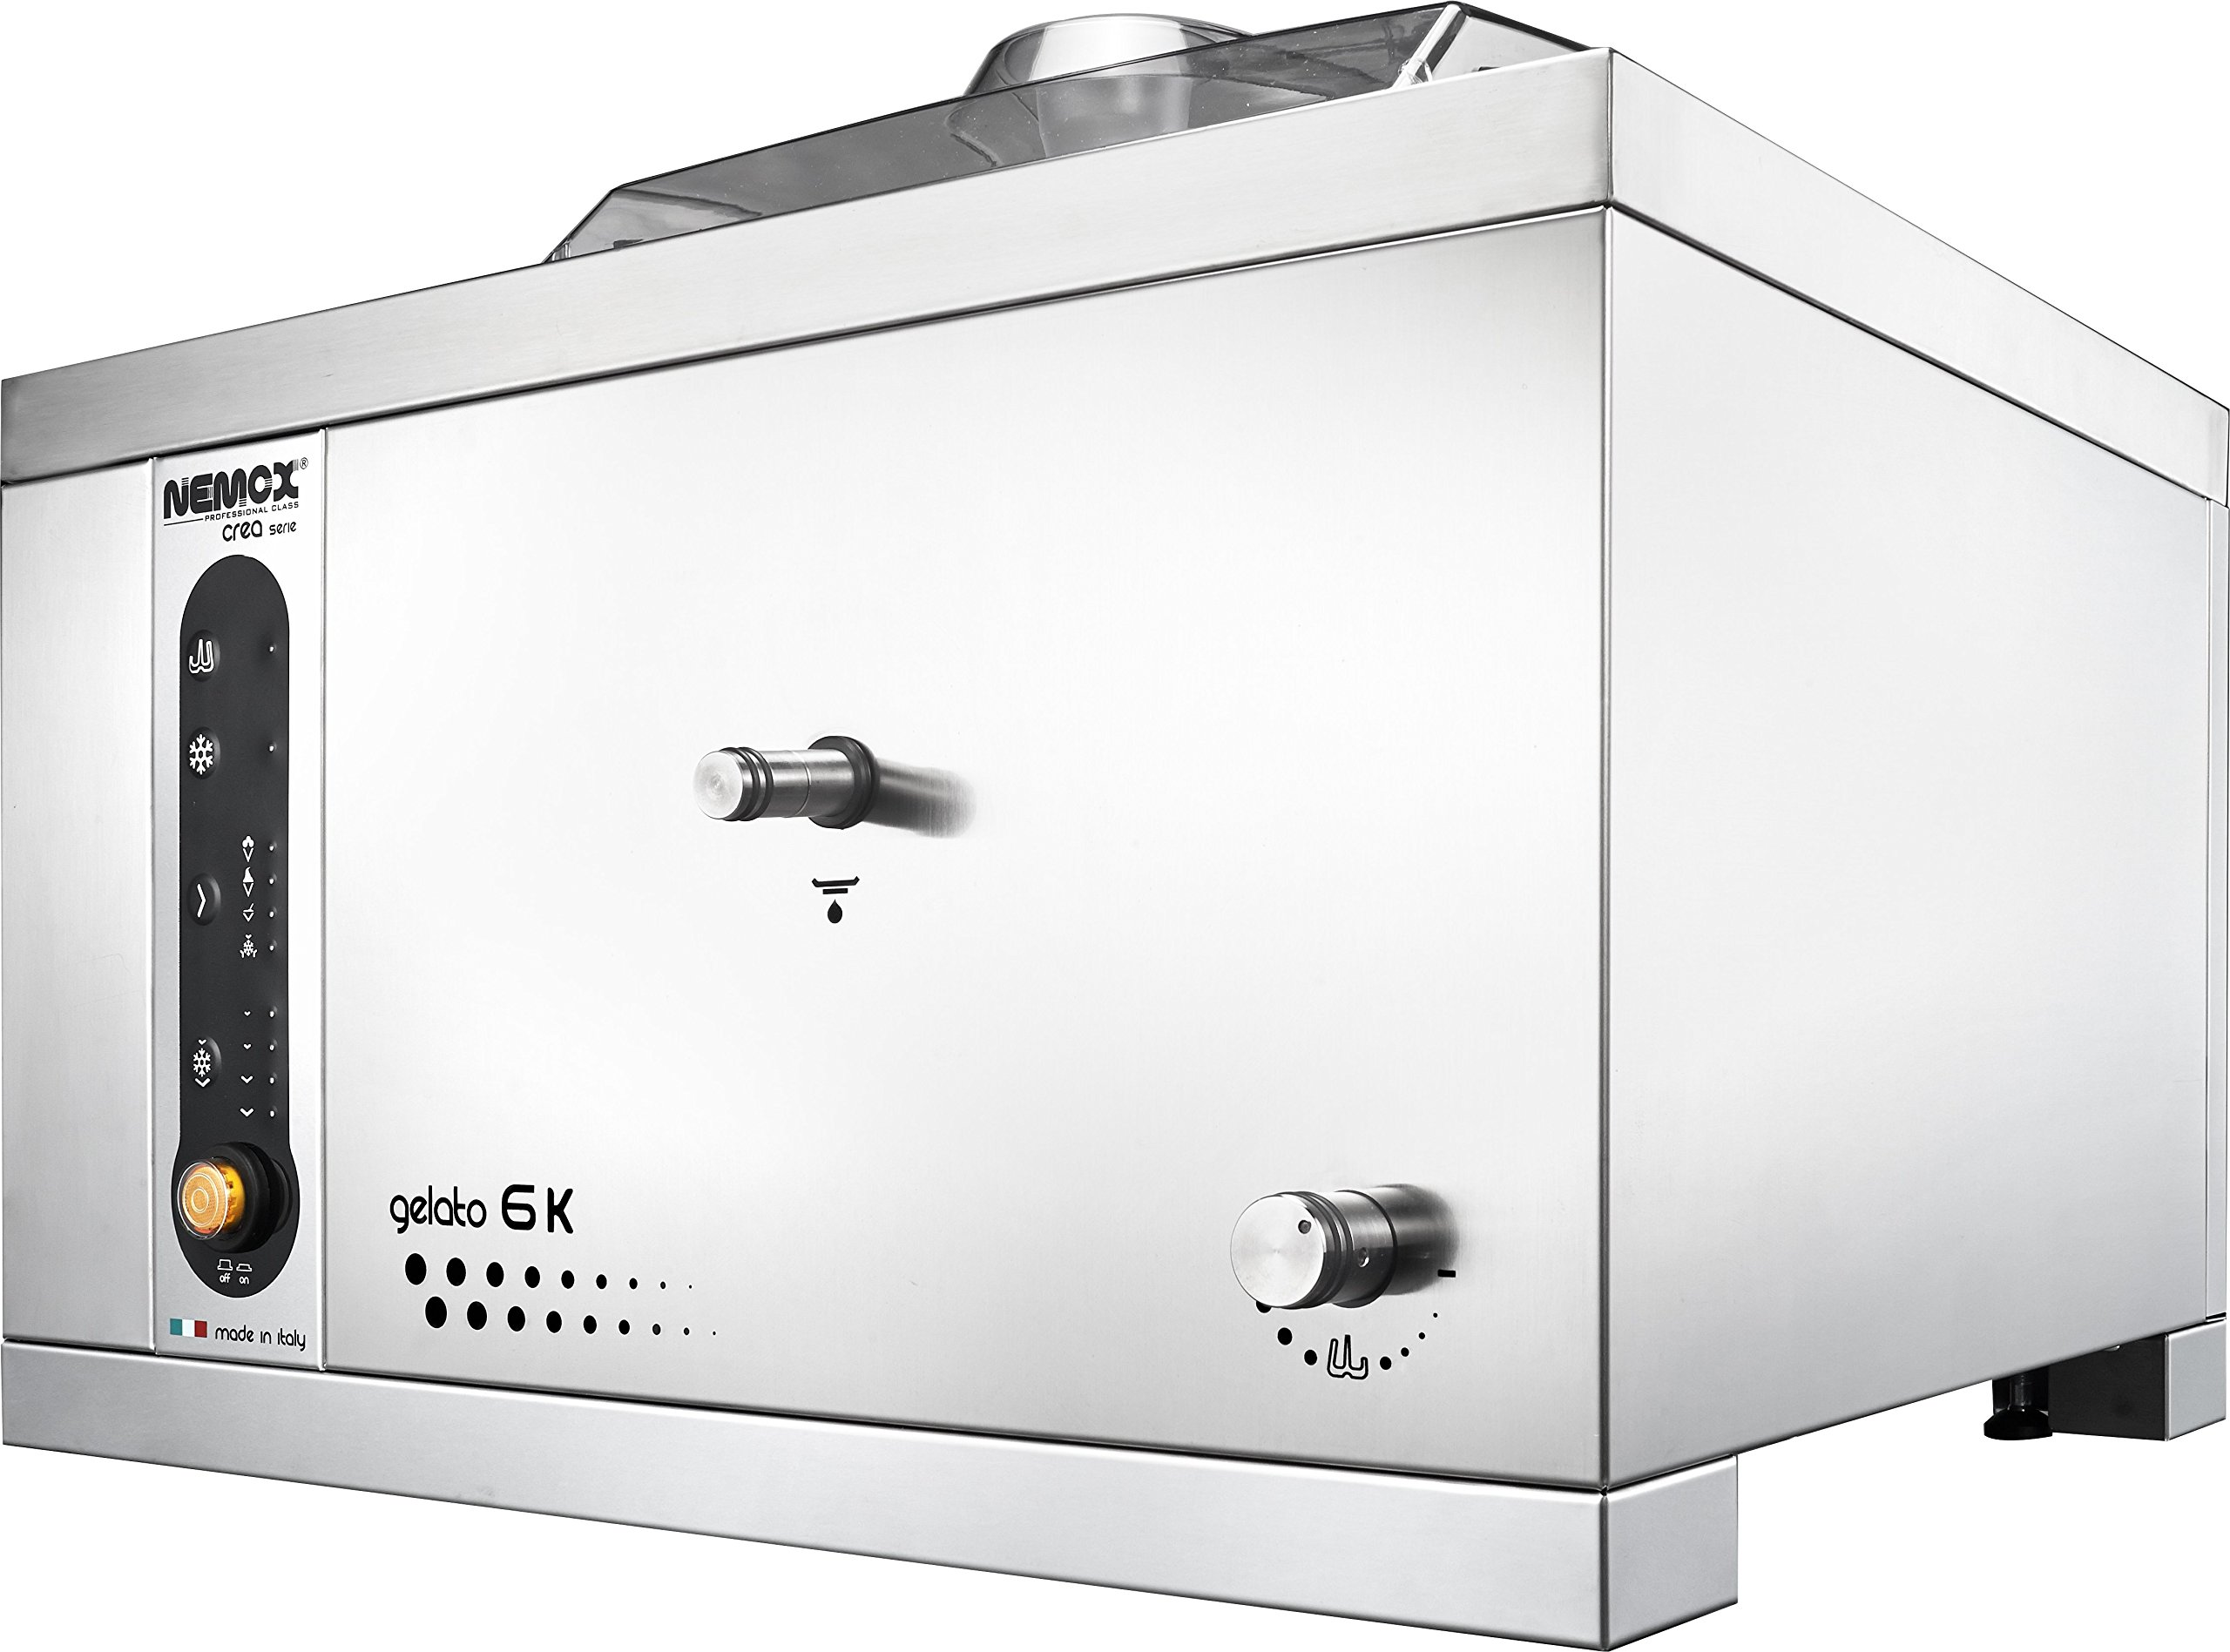 Nemox Pro 6K Crea Fully Automatic Commercial Tabletop Gelato/Ice Cream Maker with Conservation, 20.9'' Length